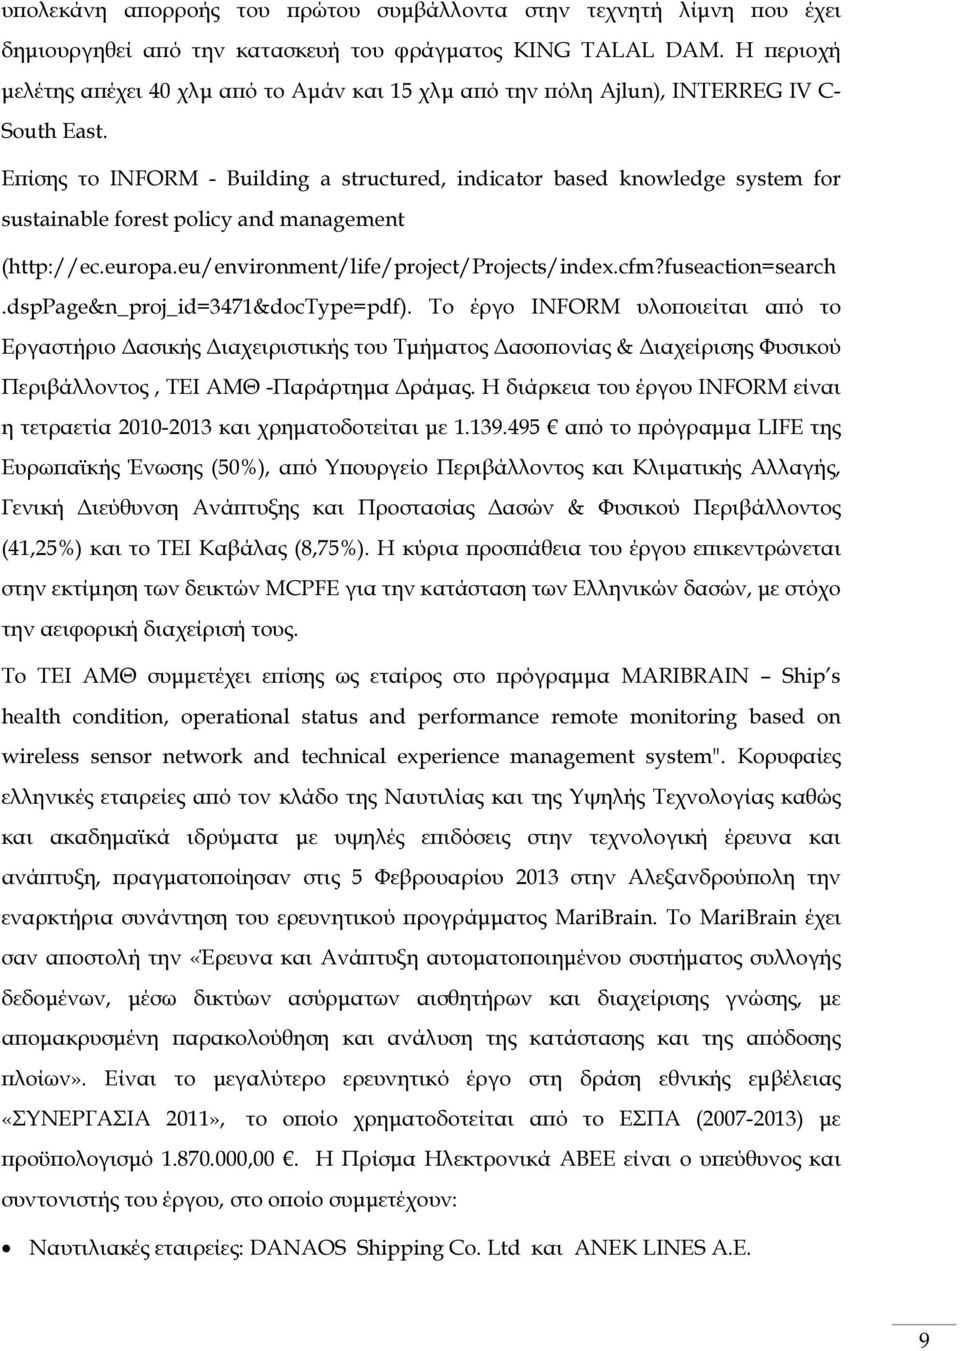 Ε ίσης το INFORM - Building a structured, indicator based knowledge system for sustainable forest policy and management (http://ec.europa.eu/environment/life/project/projects/index.cfm?